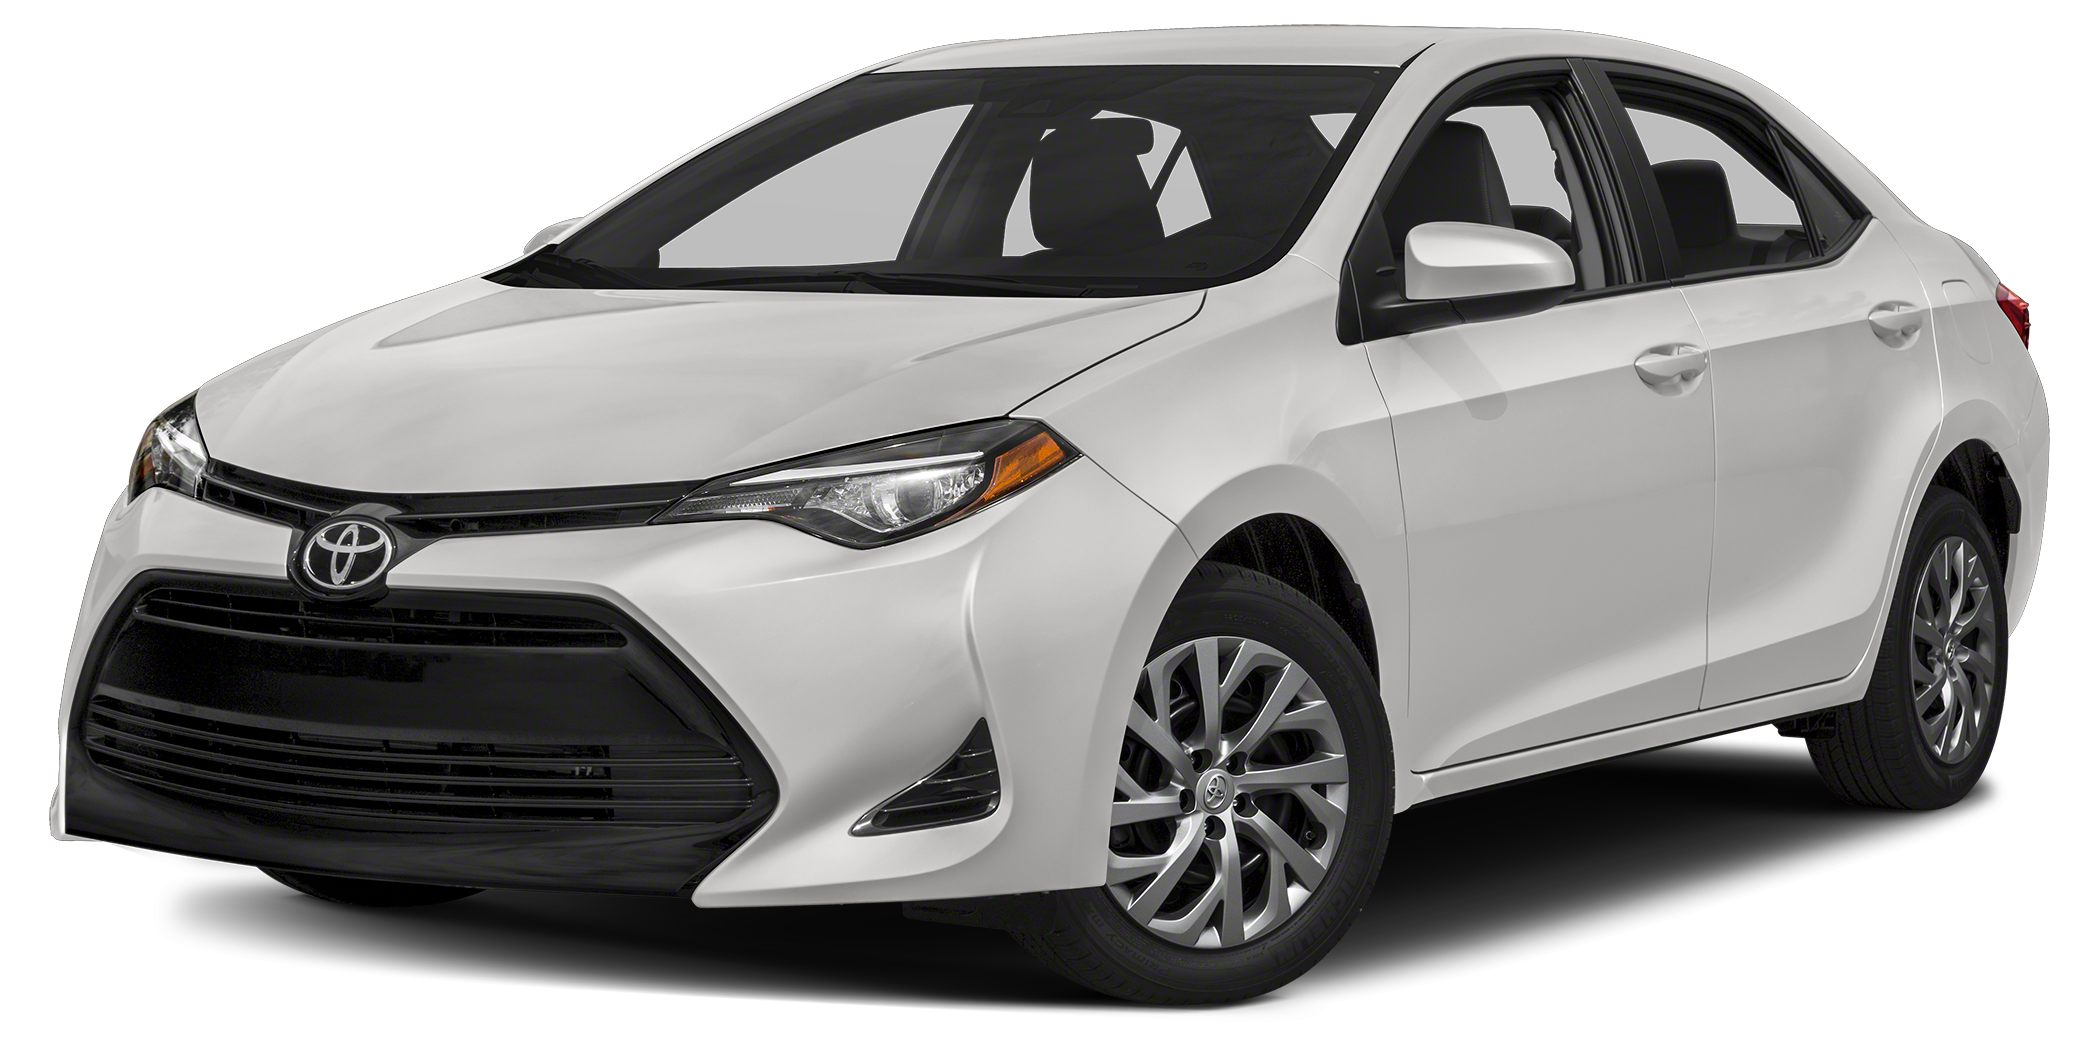 2017 Toyota Corolla LE LE trim SUPER WHITE exterior and ASH interior FUEL EFFICIENT 36 MPG Hwy2